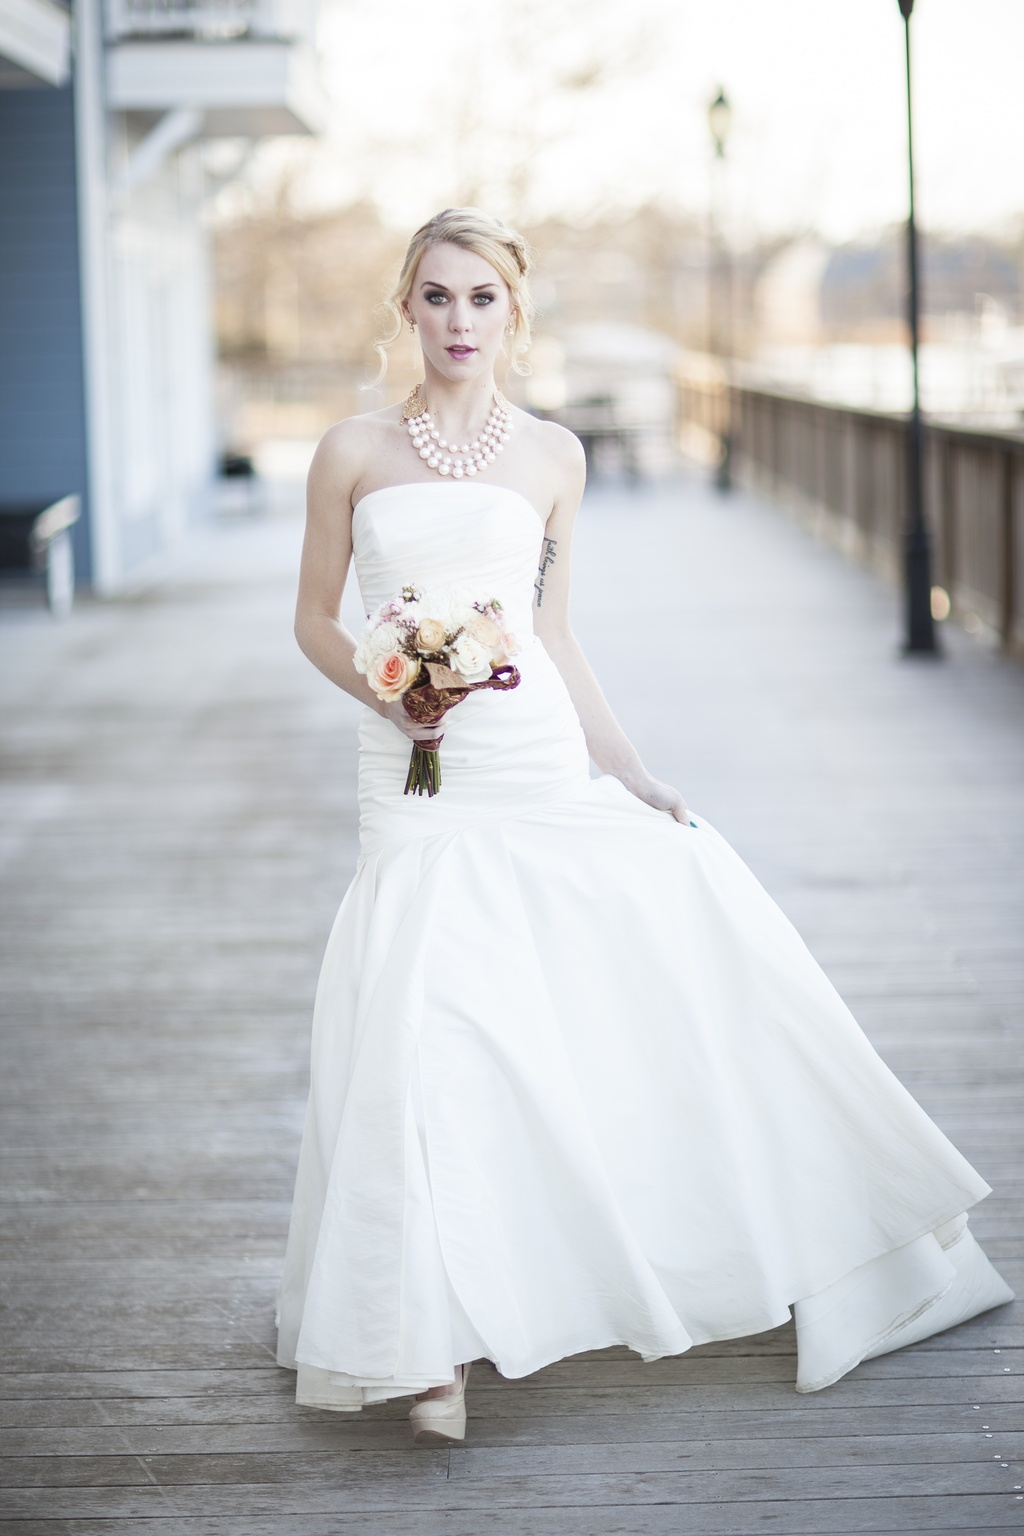 Wears white strapless mermaid wedding dress with statement necklace bride wears white strapless mermaid wedding dress with statement necklace ombrellifo Choice Image